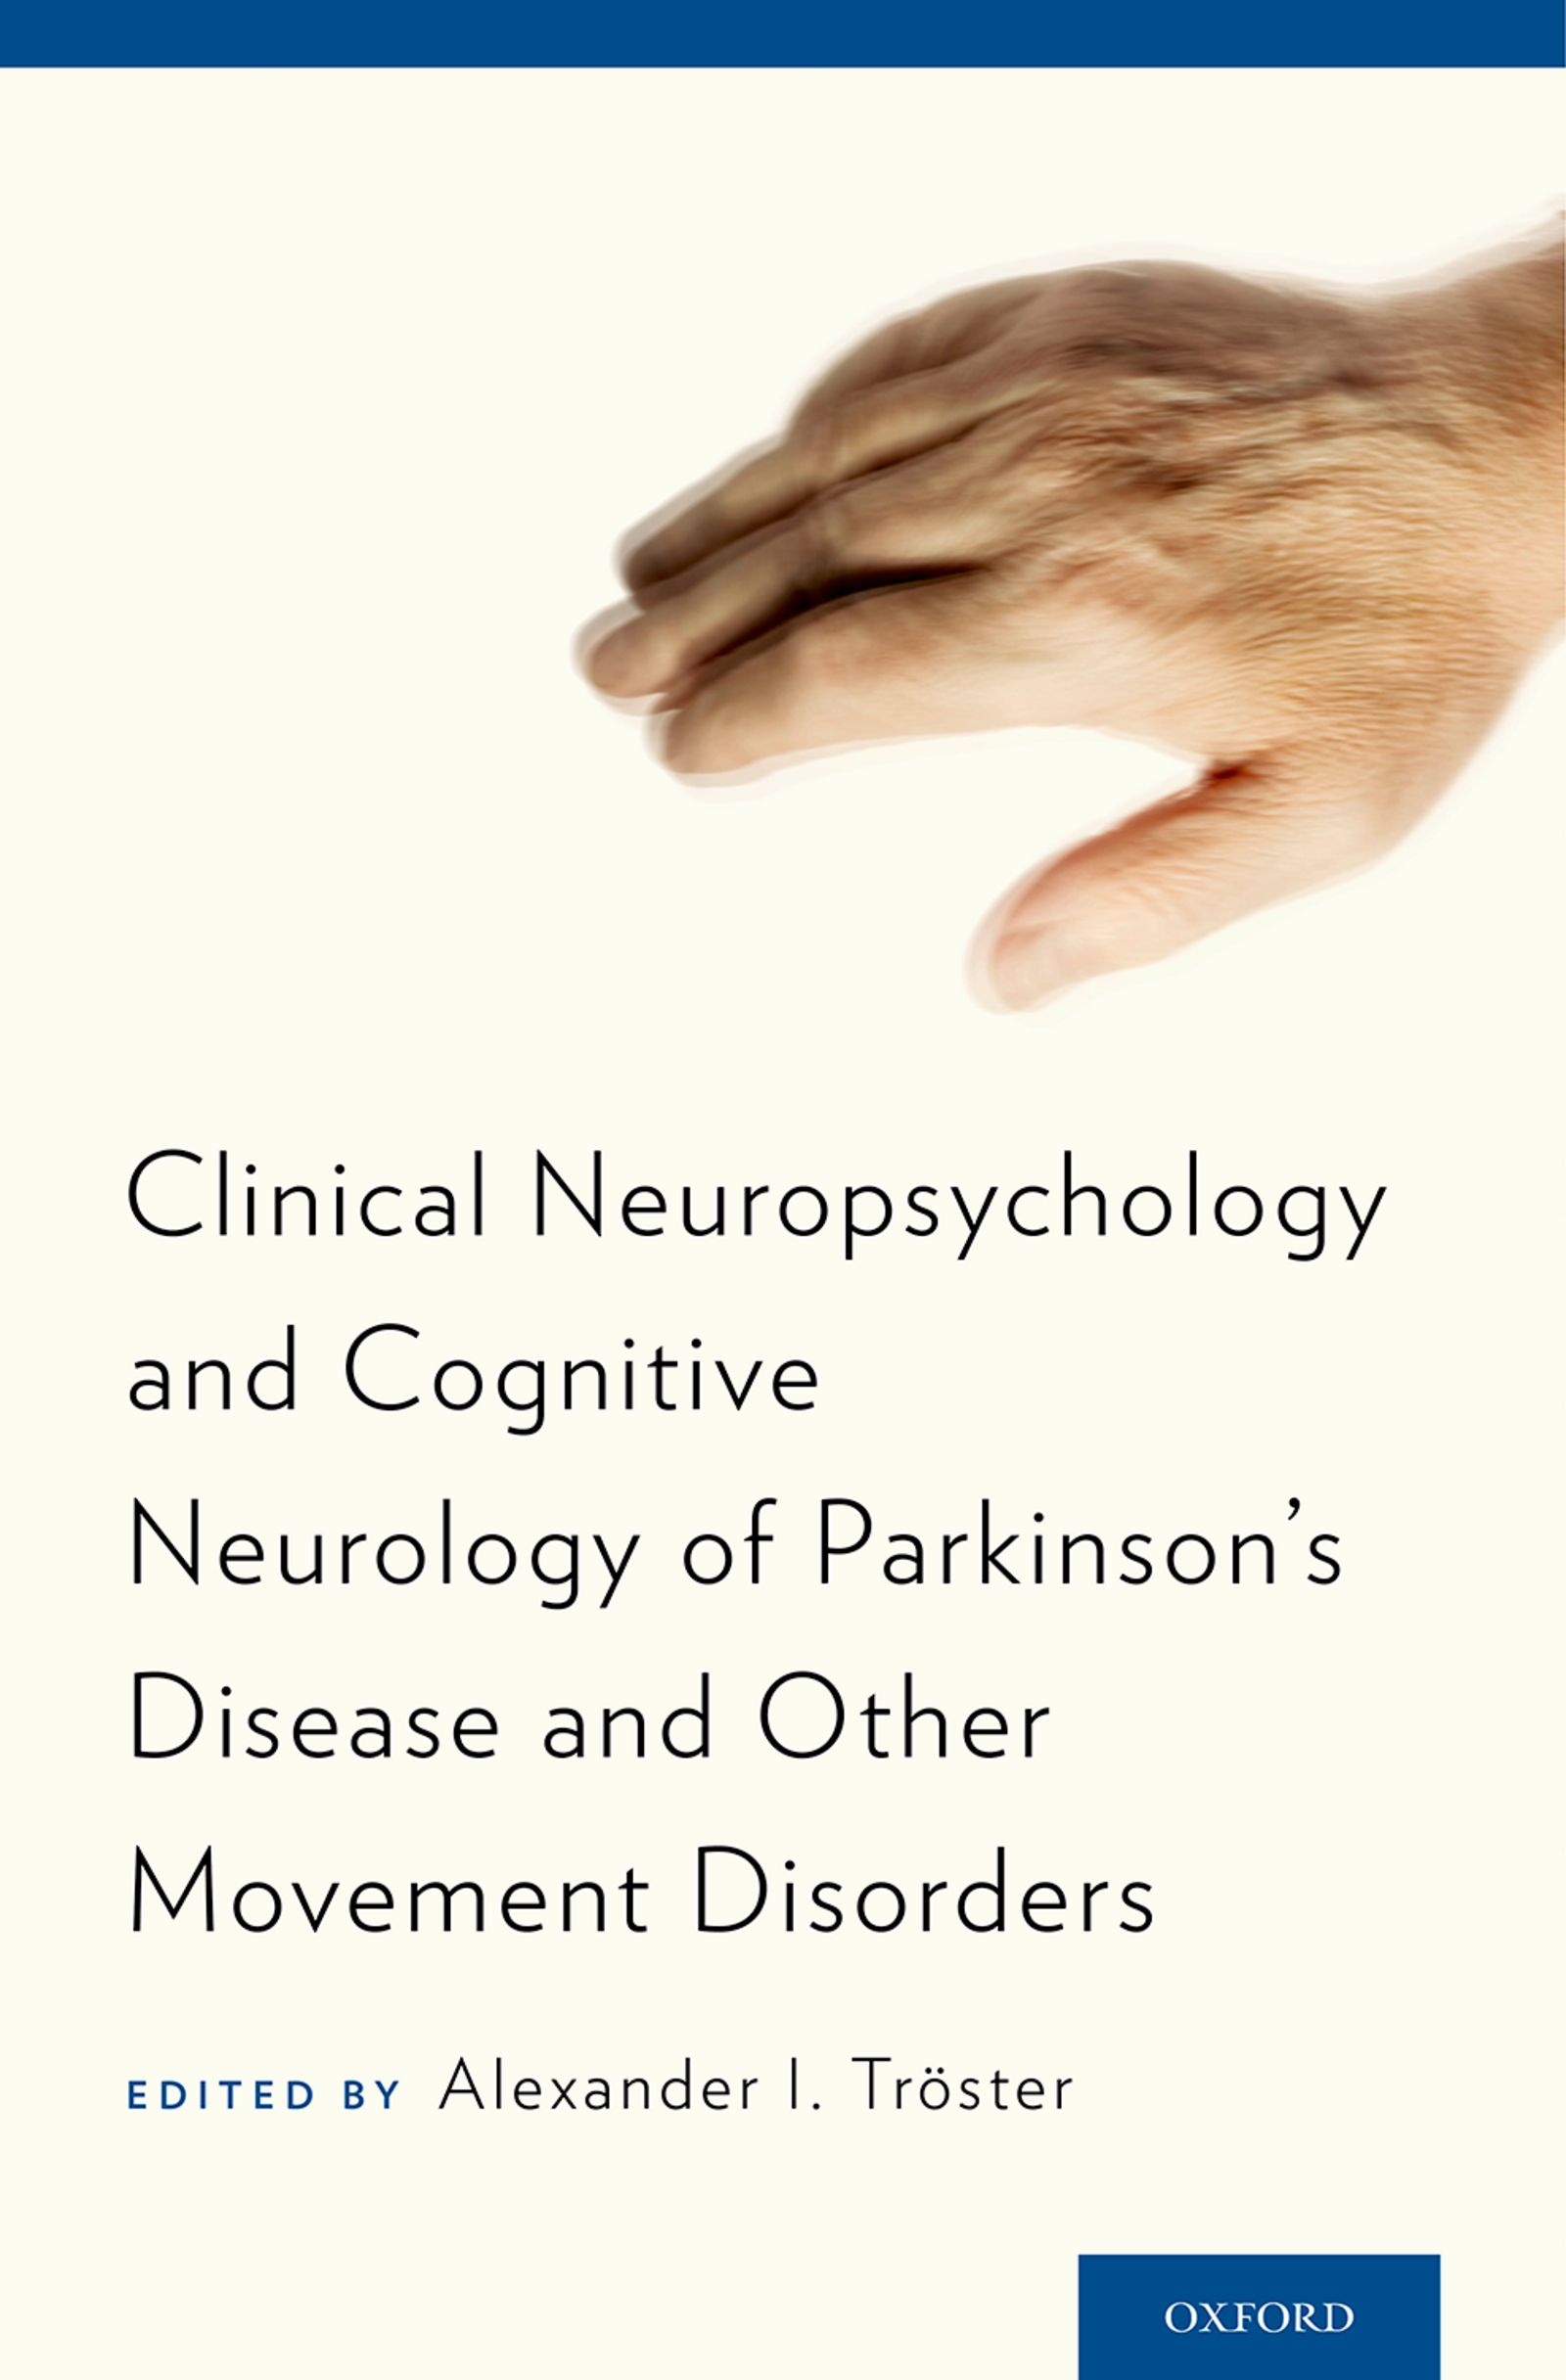 Clinical Neuropsychology and Cognitive Neurology of Parkinson's Disease and Other Movement Disorders